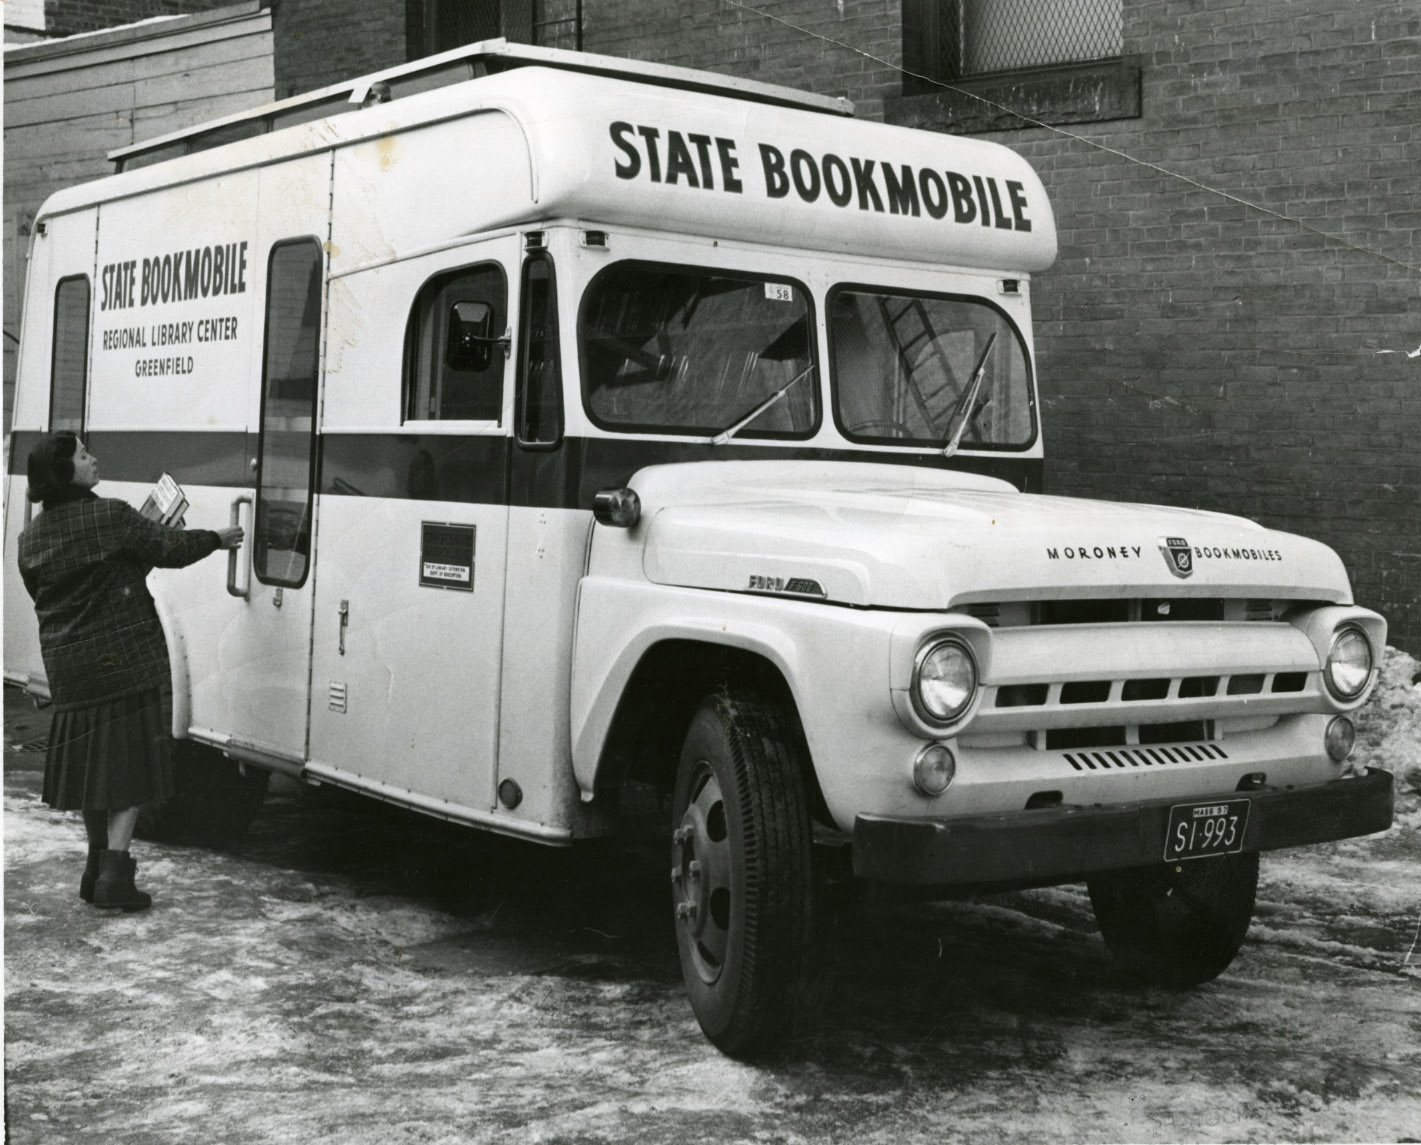 Image of Bookmobile, 1957